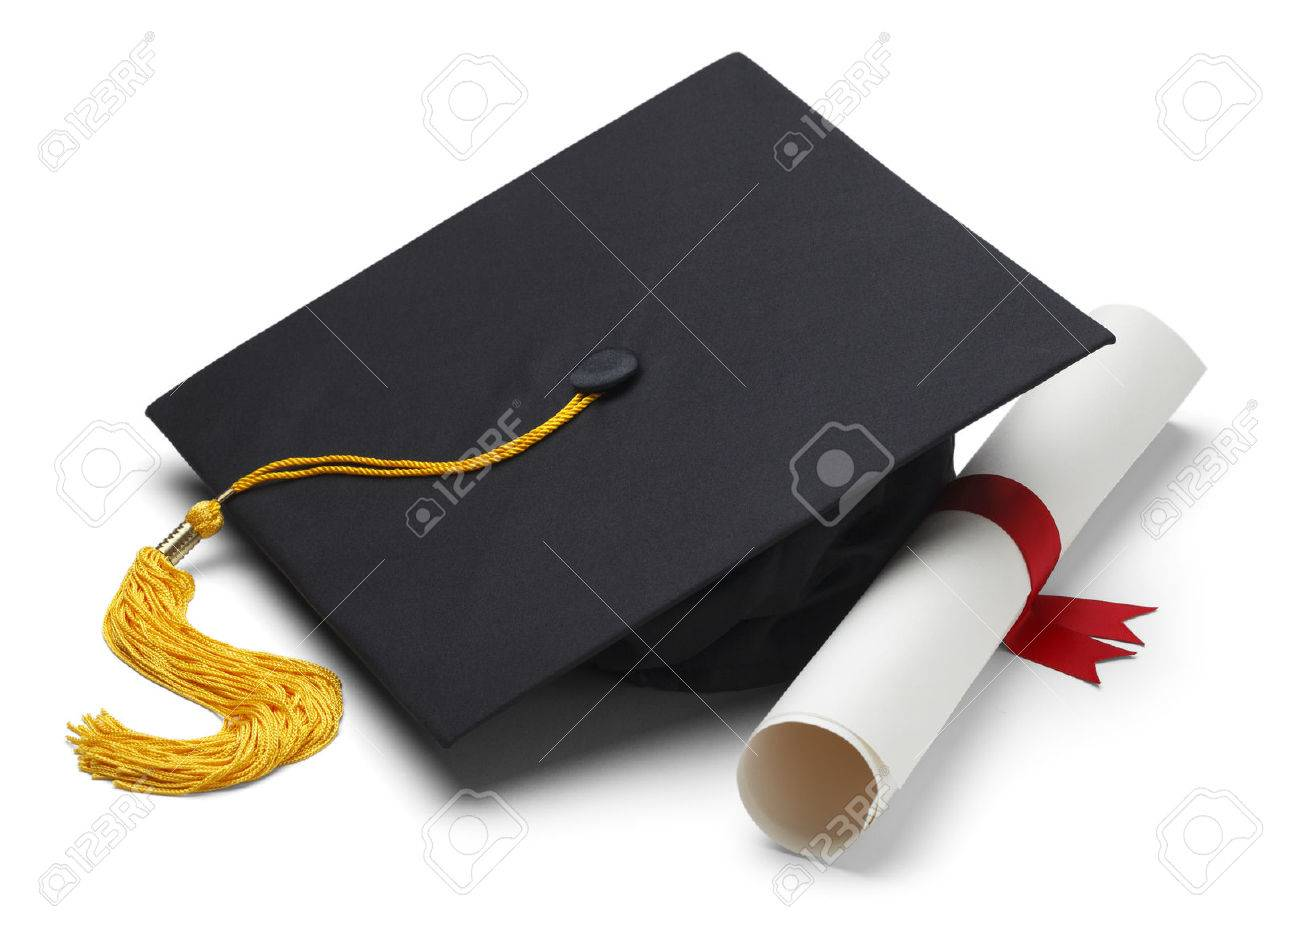 Free coloring pages graduation caps - Graduation Cap Black Graduation Cap With Degree Isolated On White Background